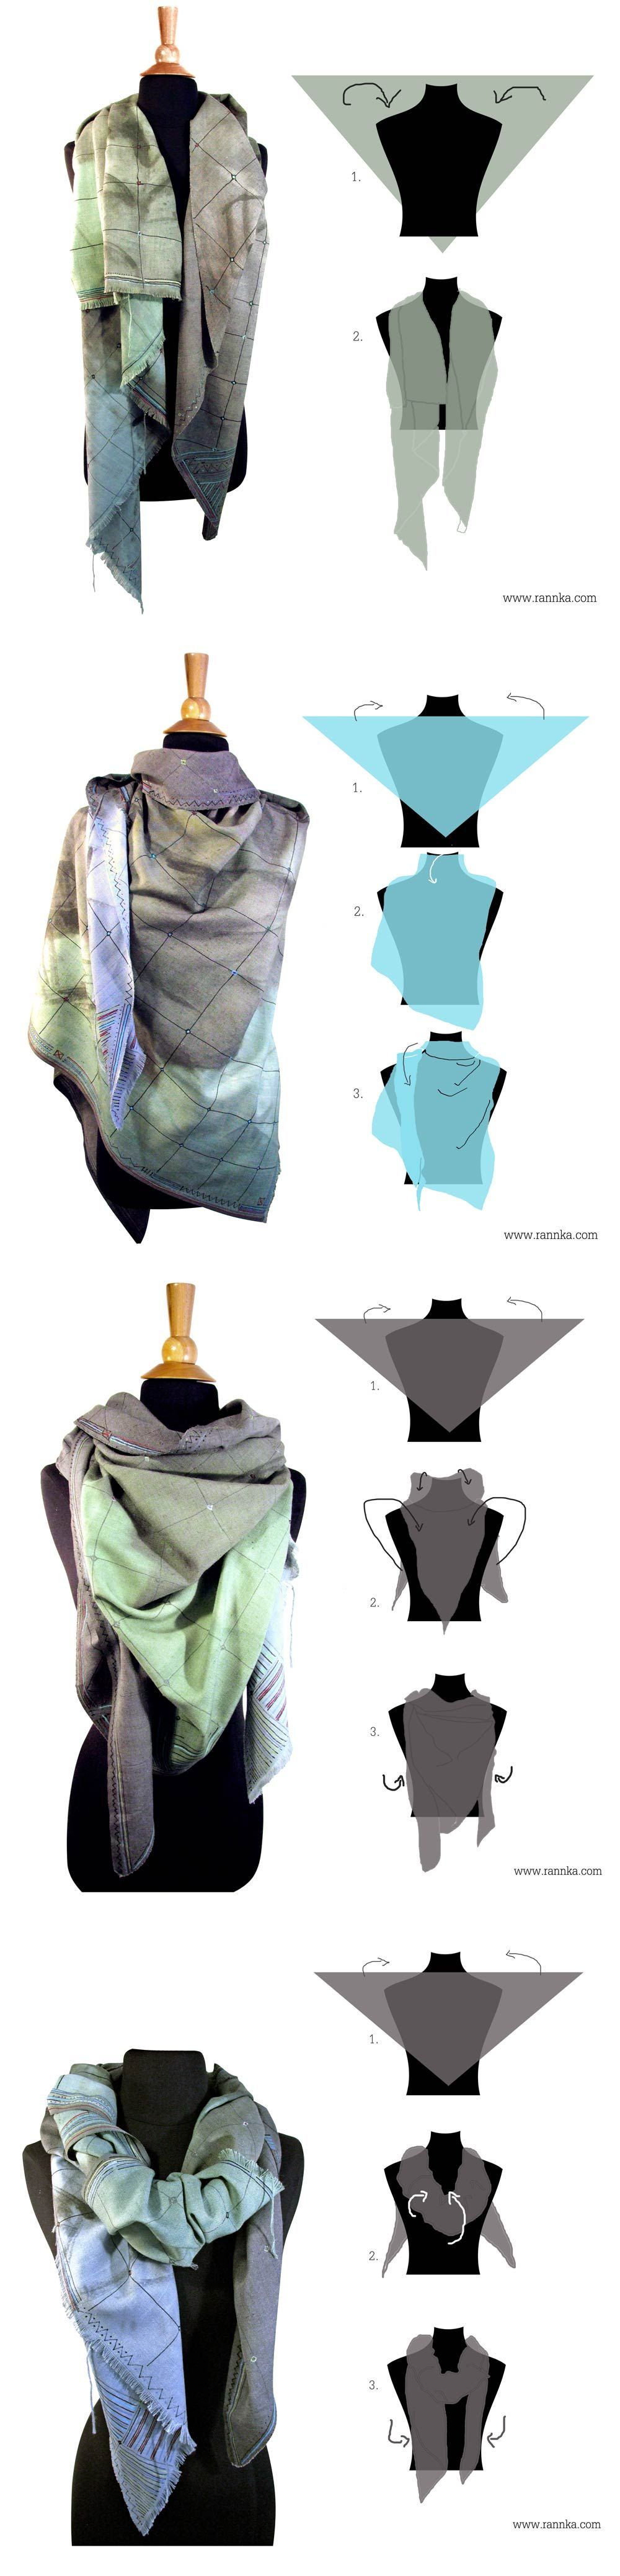 How To Wear A Large Scarf Fashion And Beauty Pinterest Tie The Doublewrap Double Windsor Knot Tips On Style Really In Examples Mostar Is Oversize Linen Triangle However Following Techniques Can